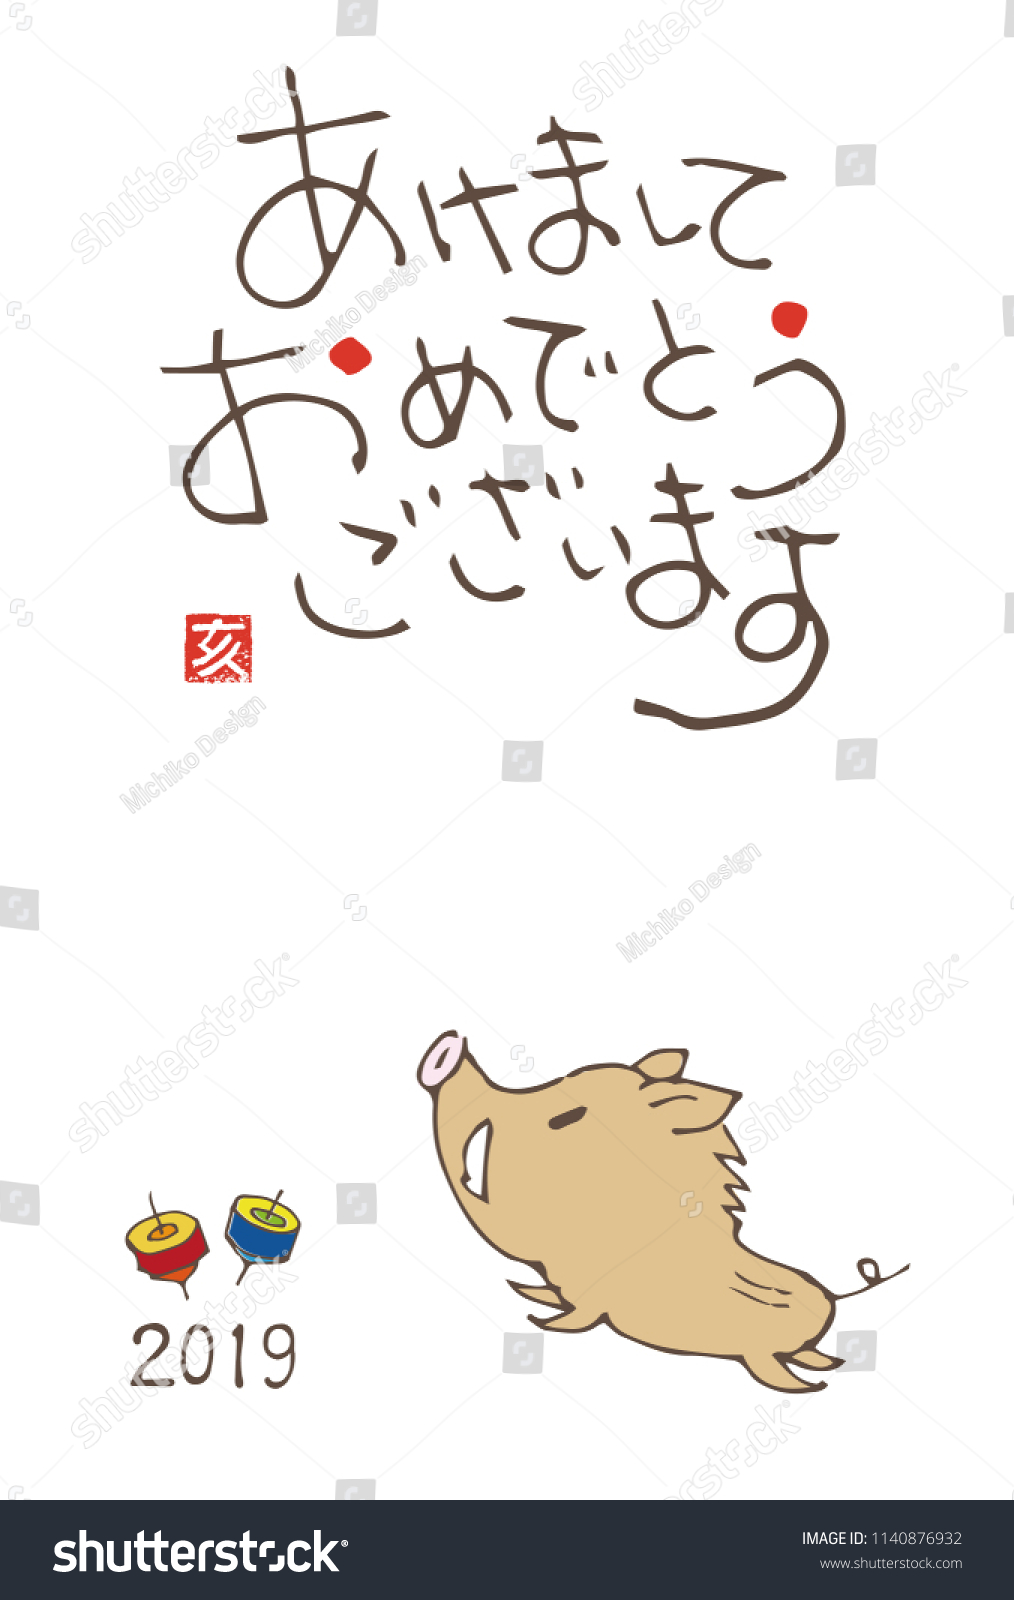 New year greeting japanese words year stock vector royalty free new year greeting japanese words for year 2019 translation of japanese happy new year m4hsunfo